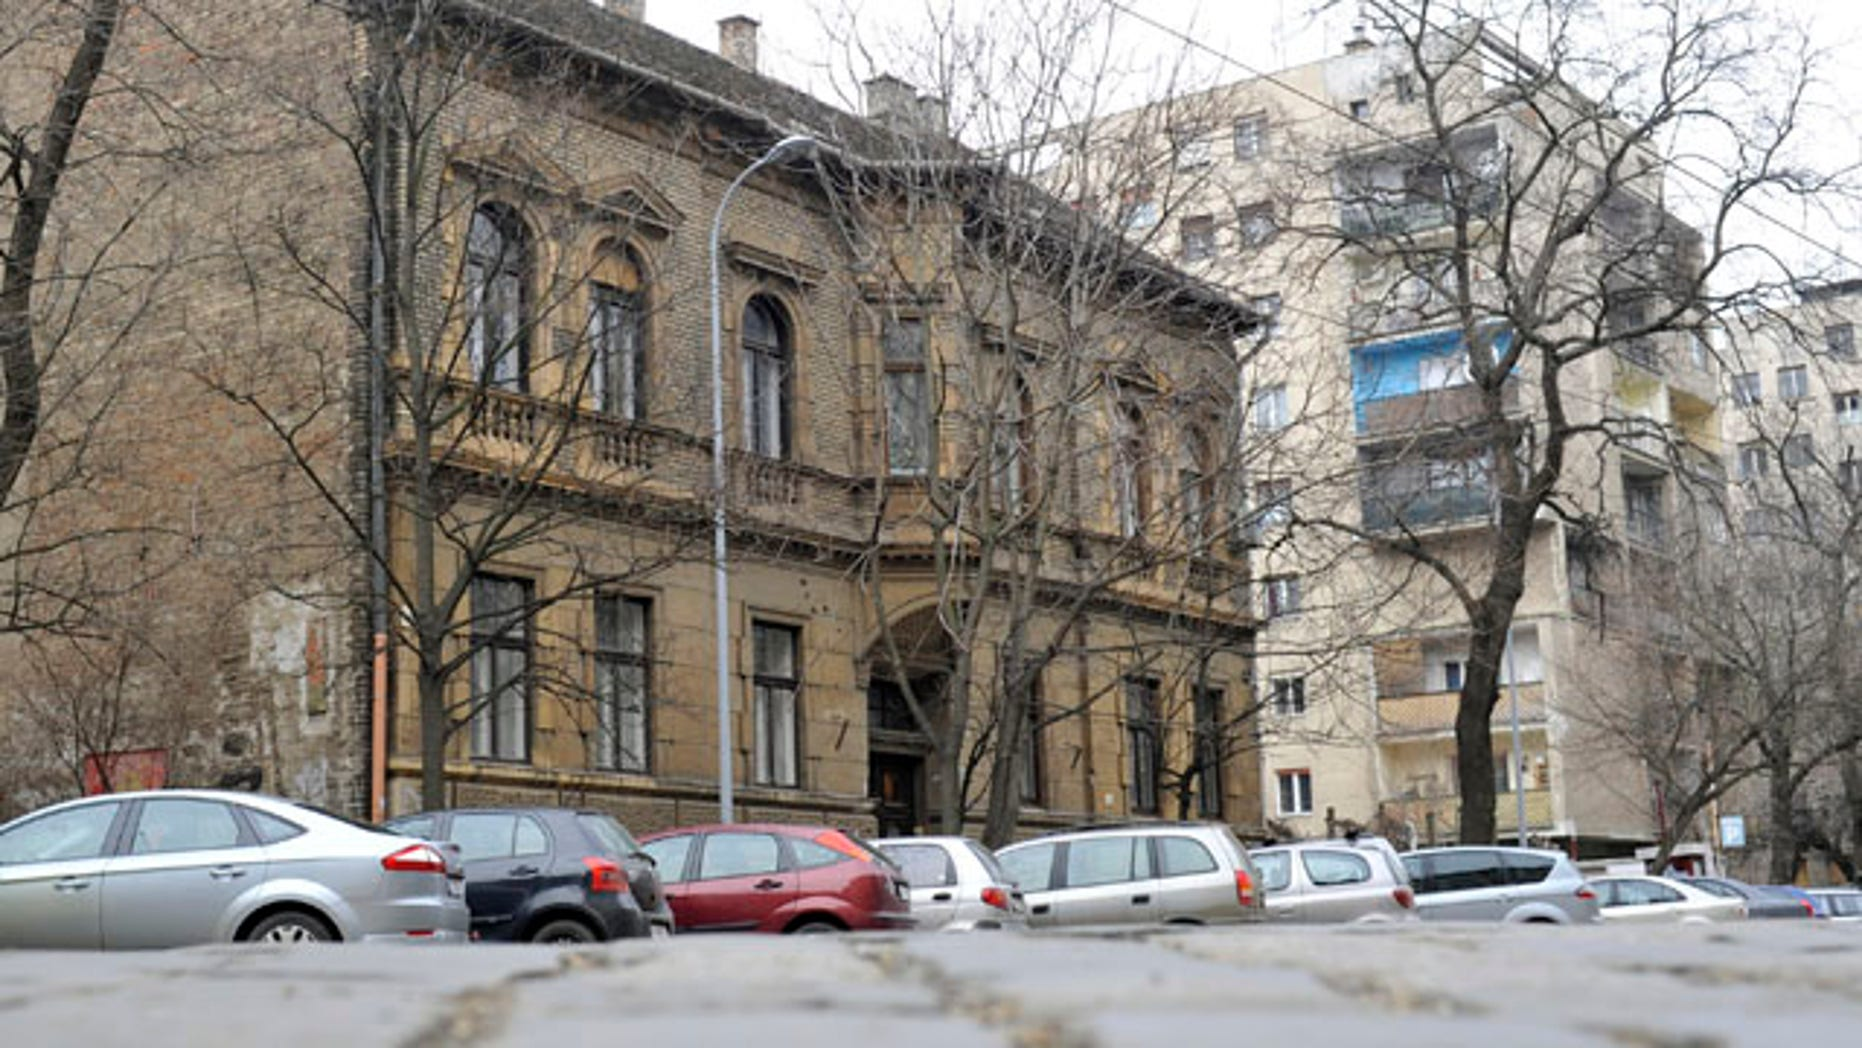 Feb. 14: General view of the house of former WWII Hungarian military officer Sandor Kepiro, who has been charged with war crimes photographed in Budapest nearly 70 years ago.